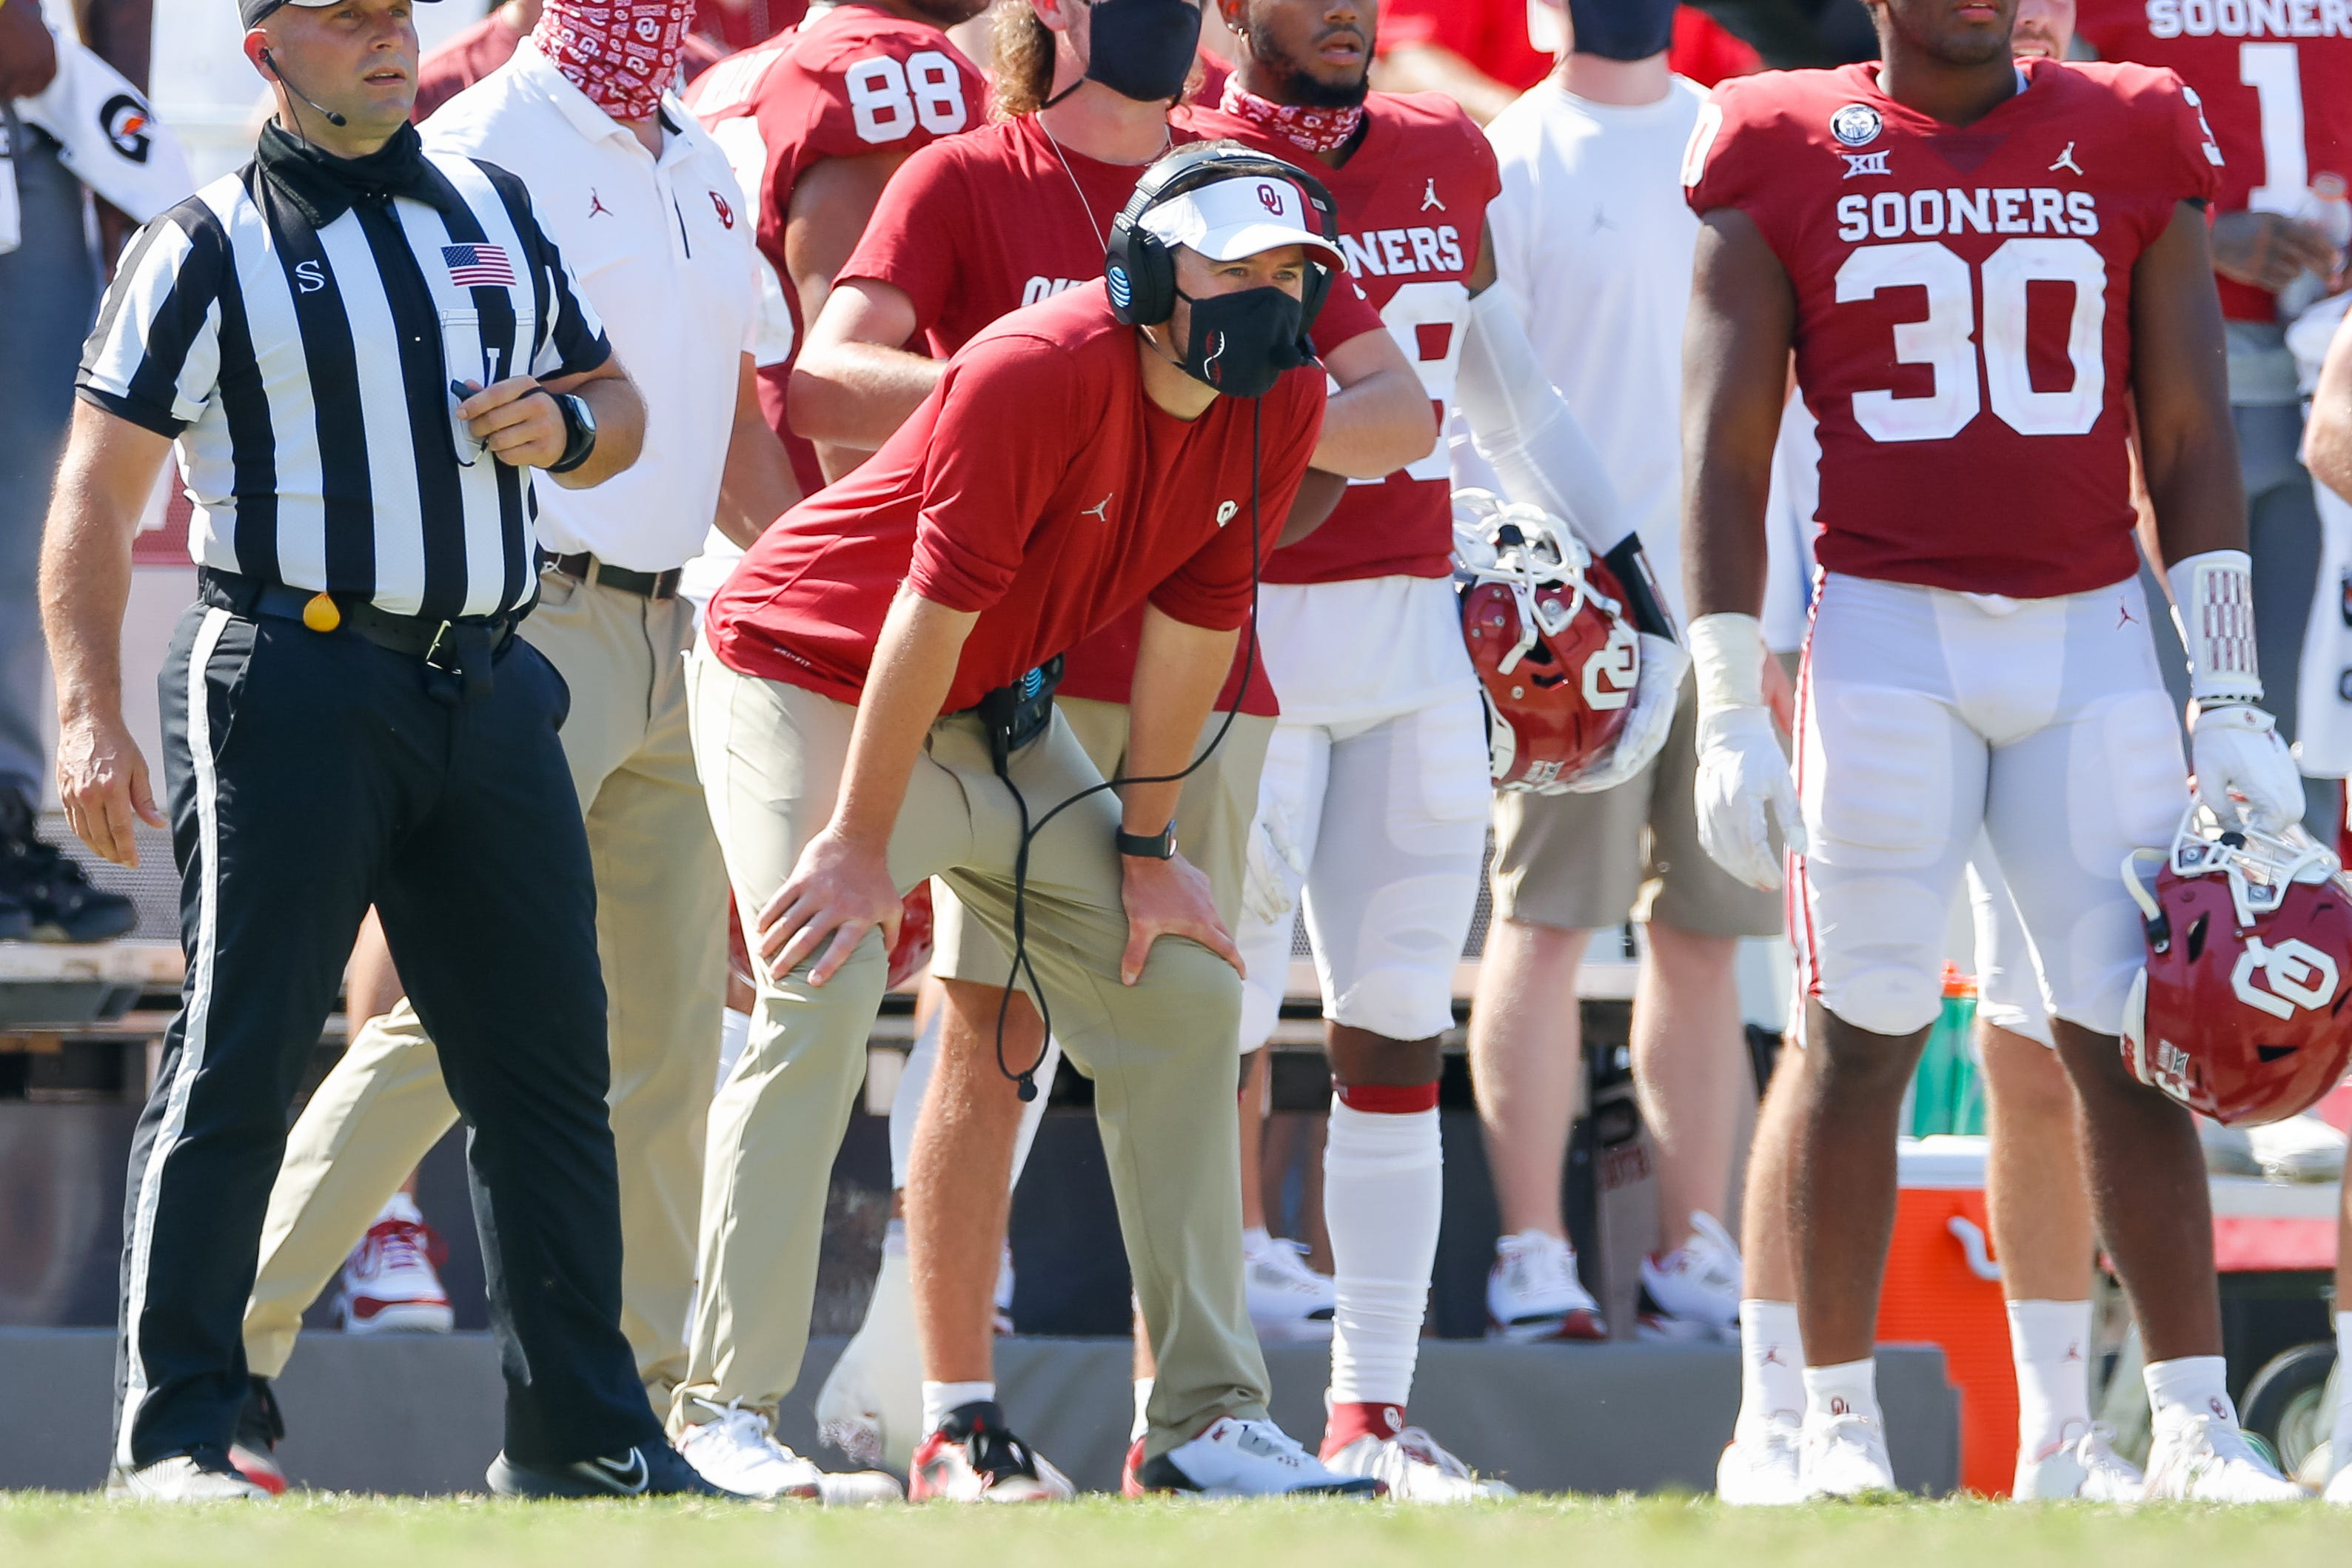 As views on marijuana shift, Oklahoma coach Lincoln Riley says punishment 'not right' for suspended Sooners